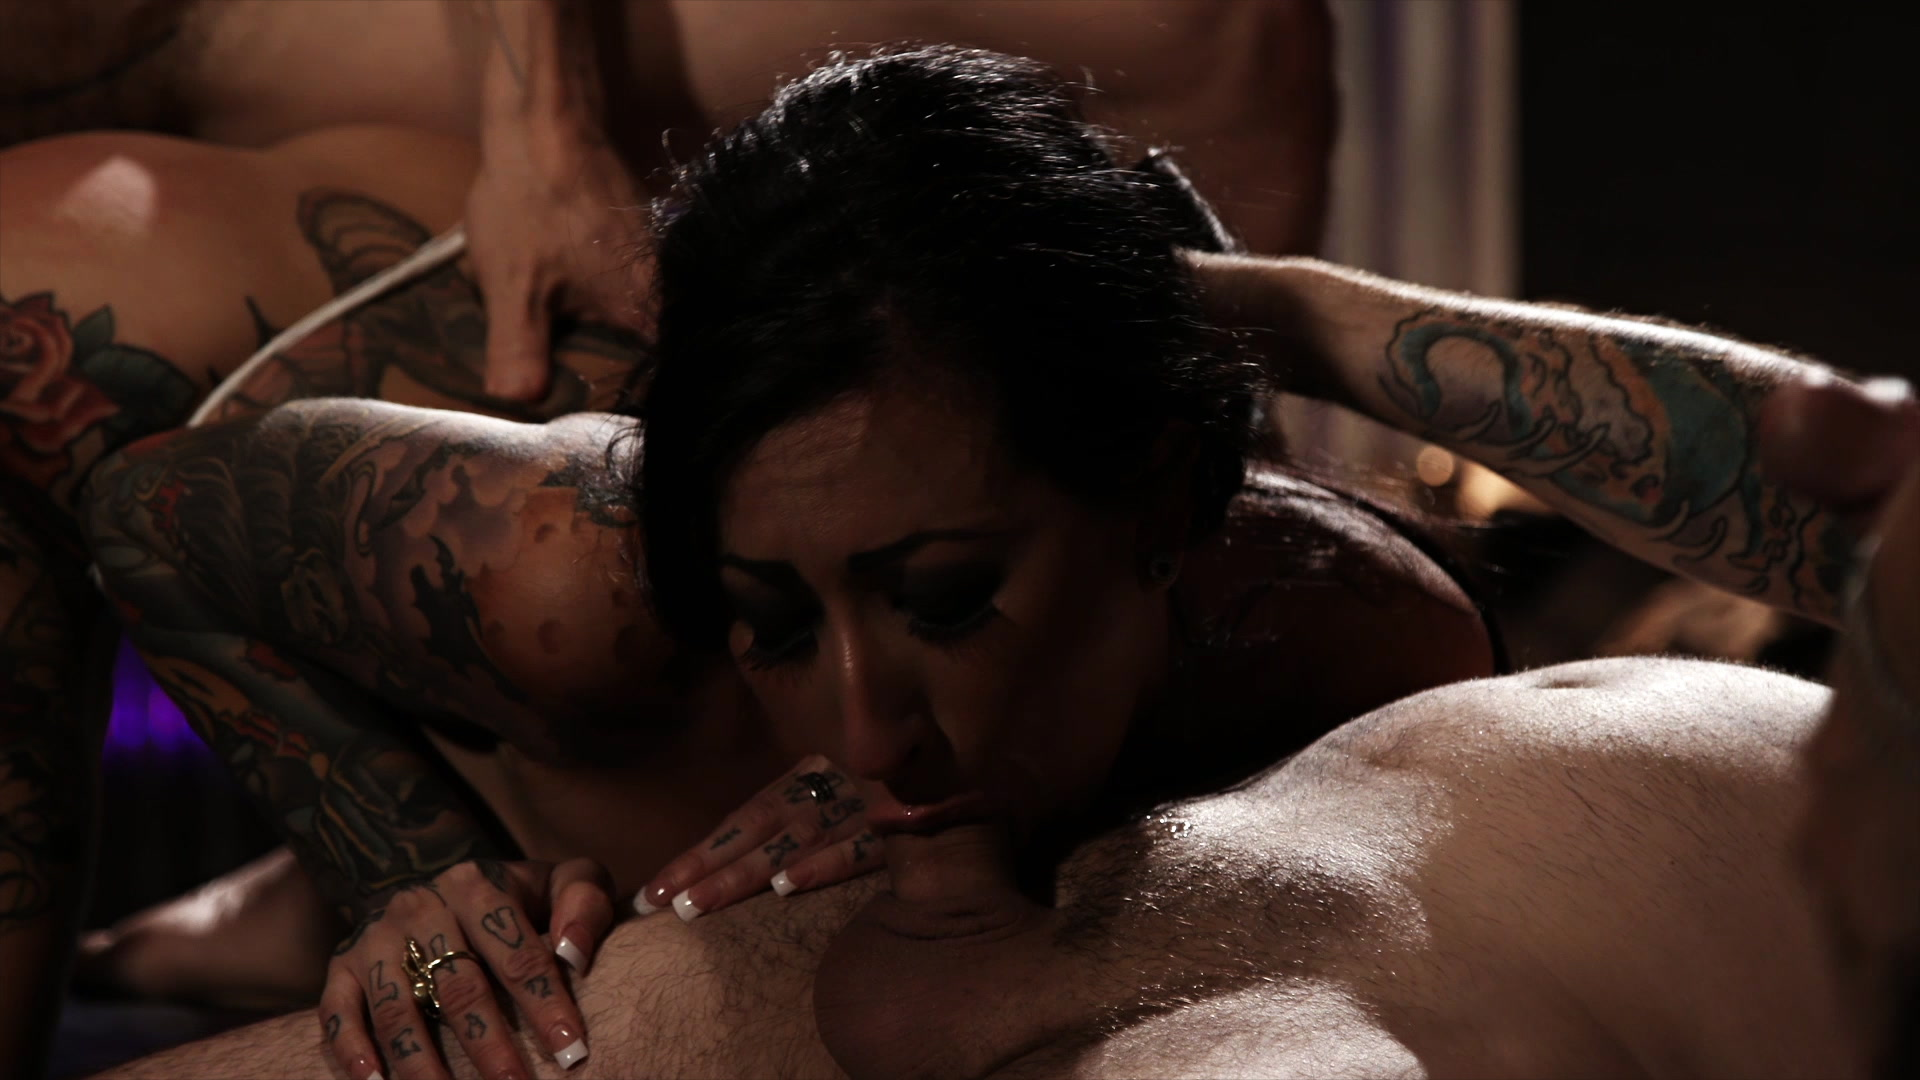 Scene with Tommy Pistol, Lily Lane and Owen Gray - image 9 out of 20